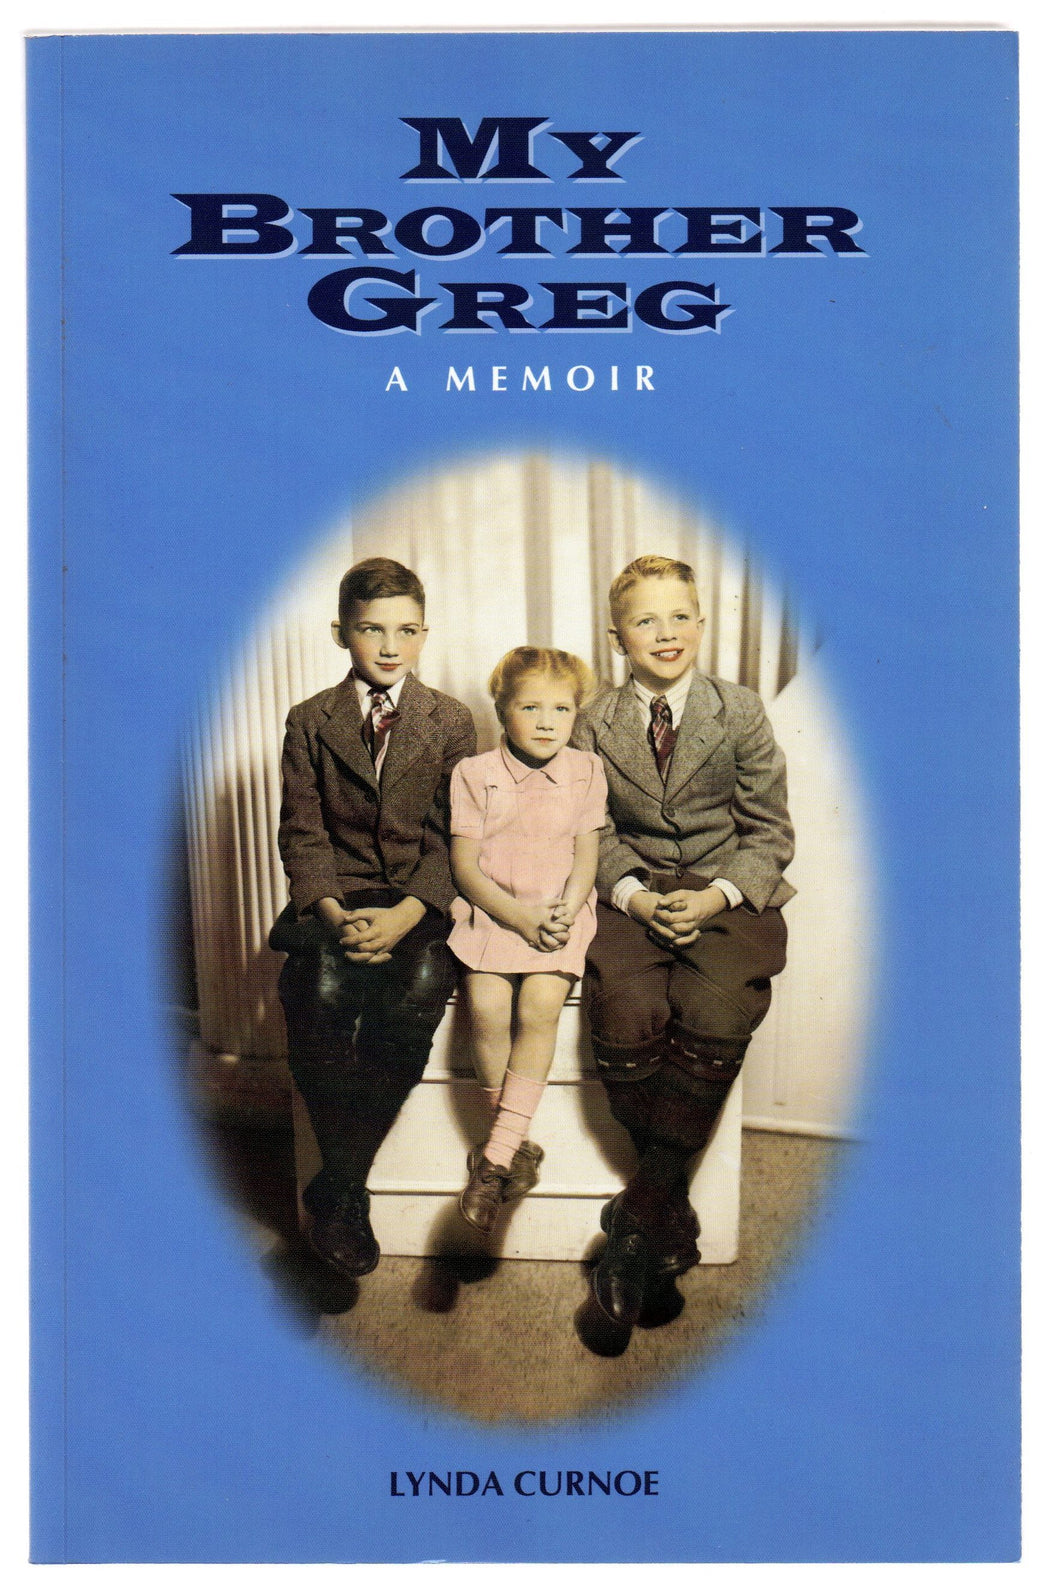 My Brother Greg: A Memoir